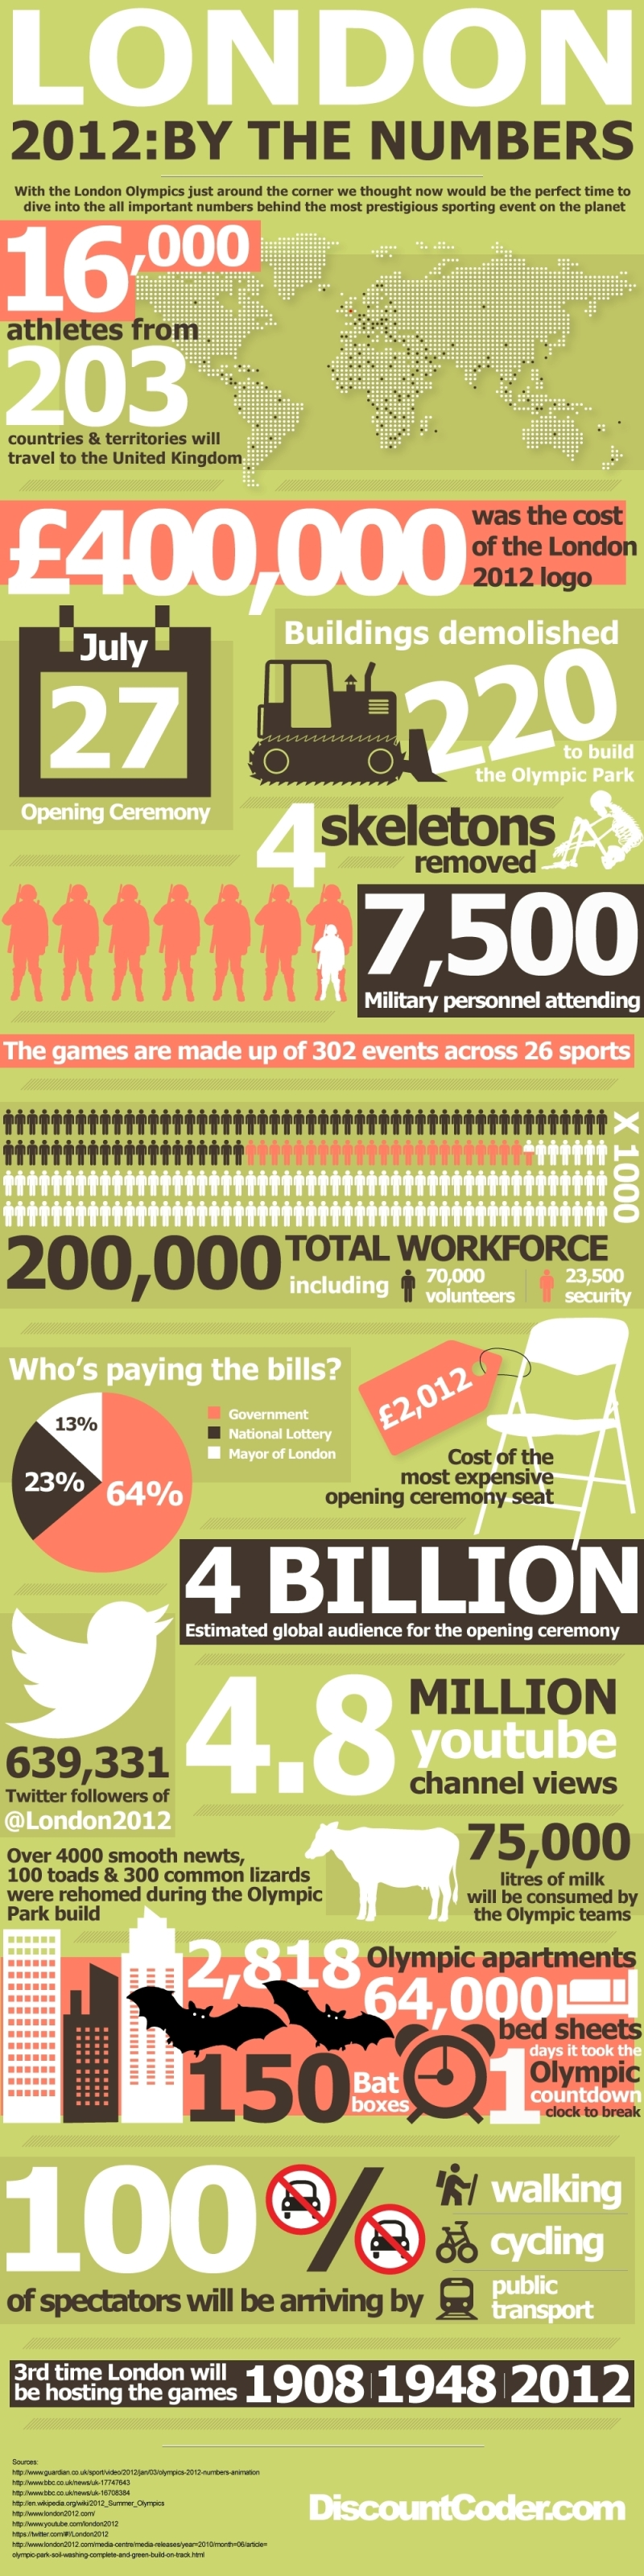 London 2012: By The Numbers (Source: Discount Coder)<br /> http://www.discountcoder.com/blog/london-2012-by-the-numbers-infographic/